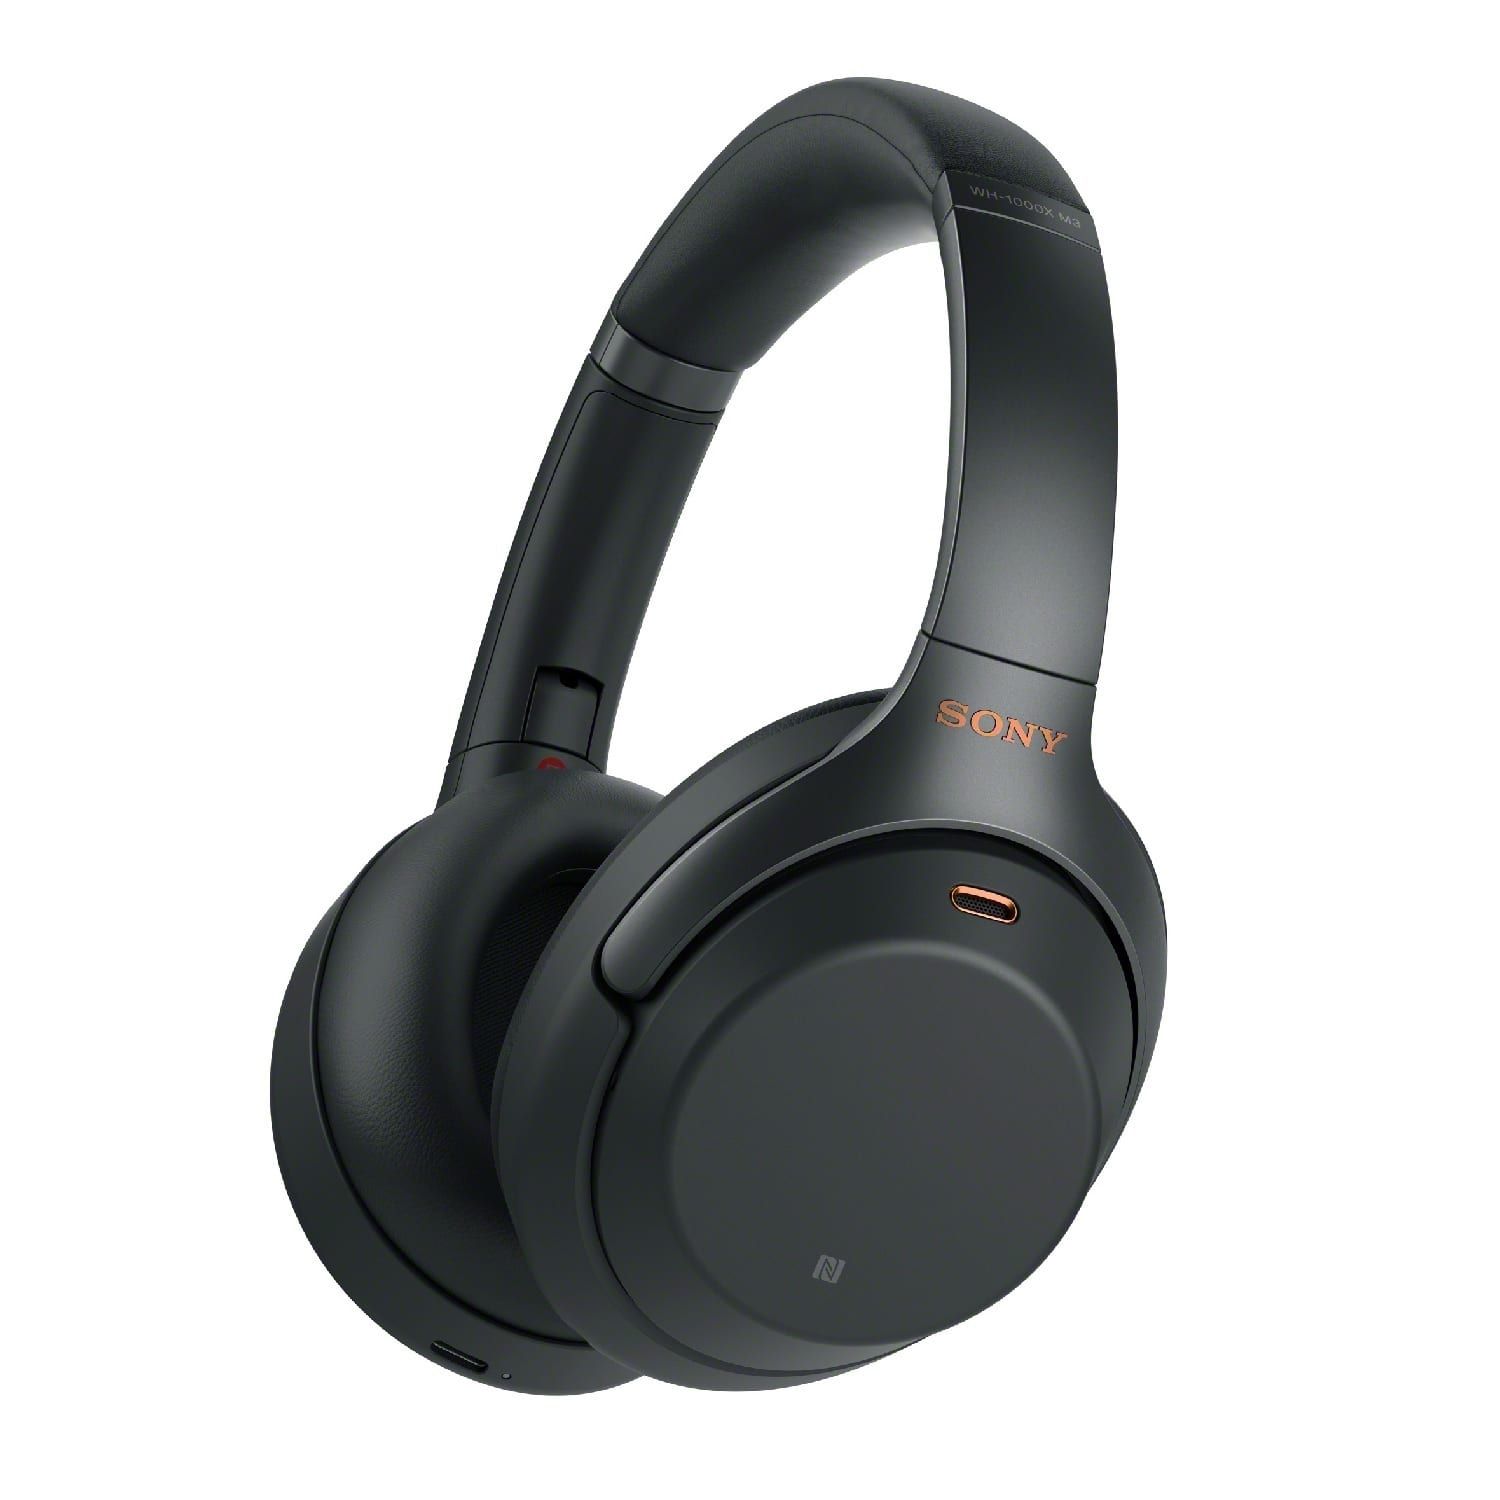 Sony WH-1000XM3 Noise Cancelling Wireless Headphones (Black)